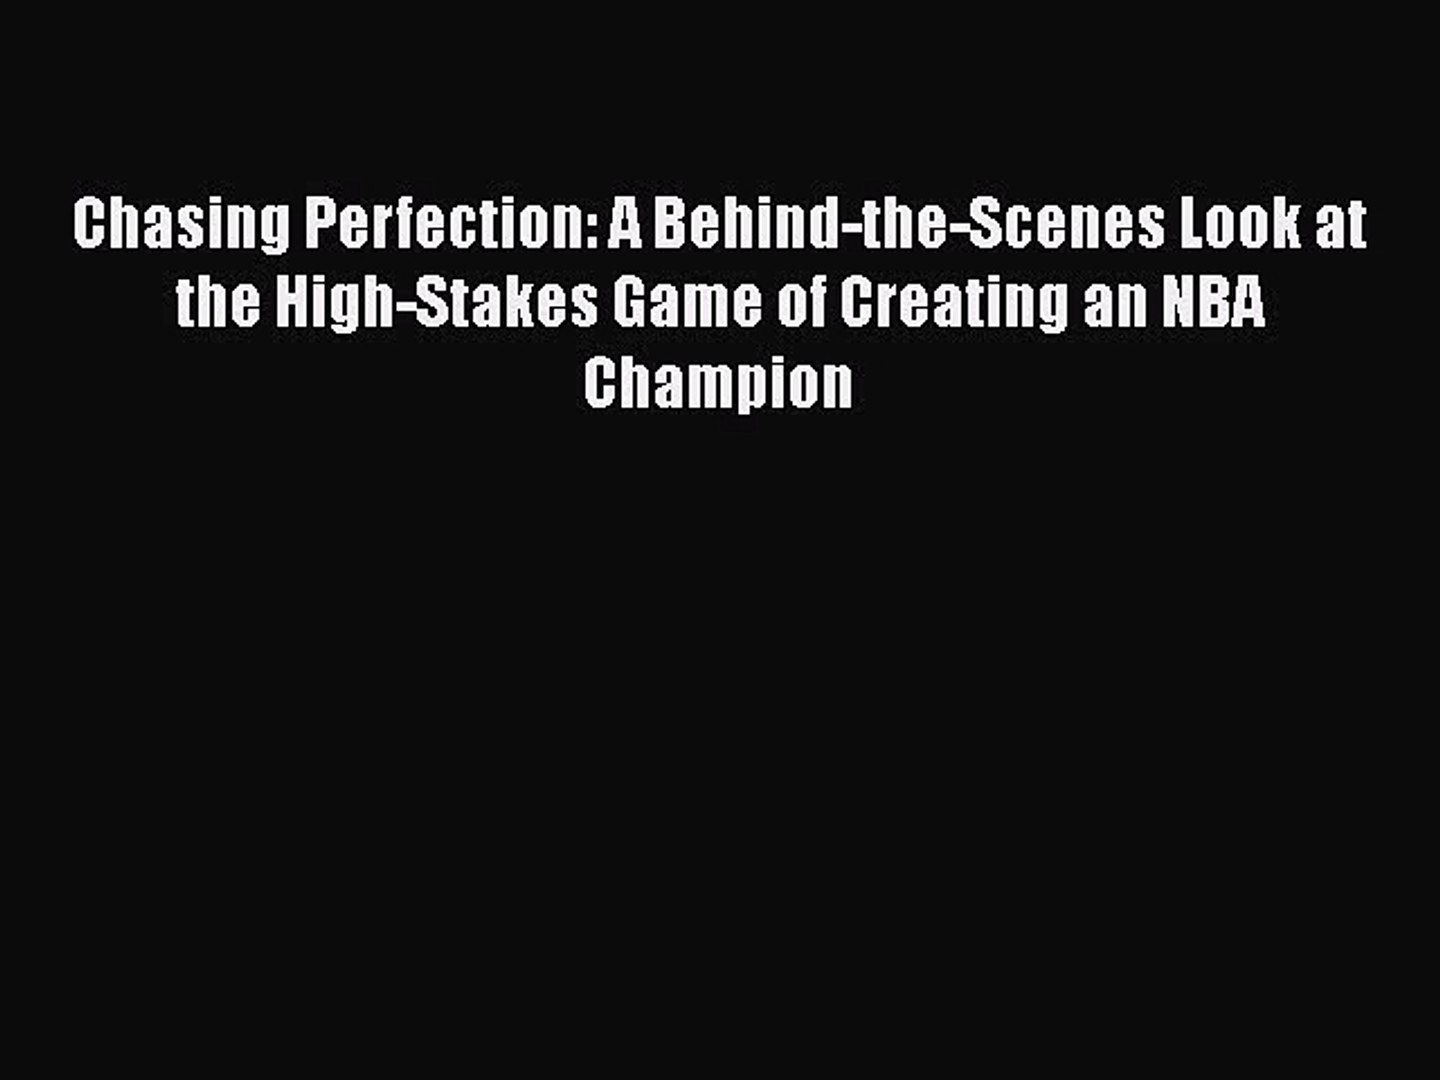 [Read Book] Chasing Perfection: A Behind-the-Scenes Look at the High-Stakes Game of Creating